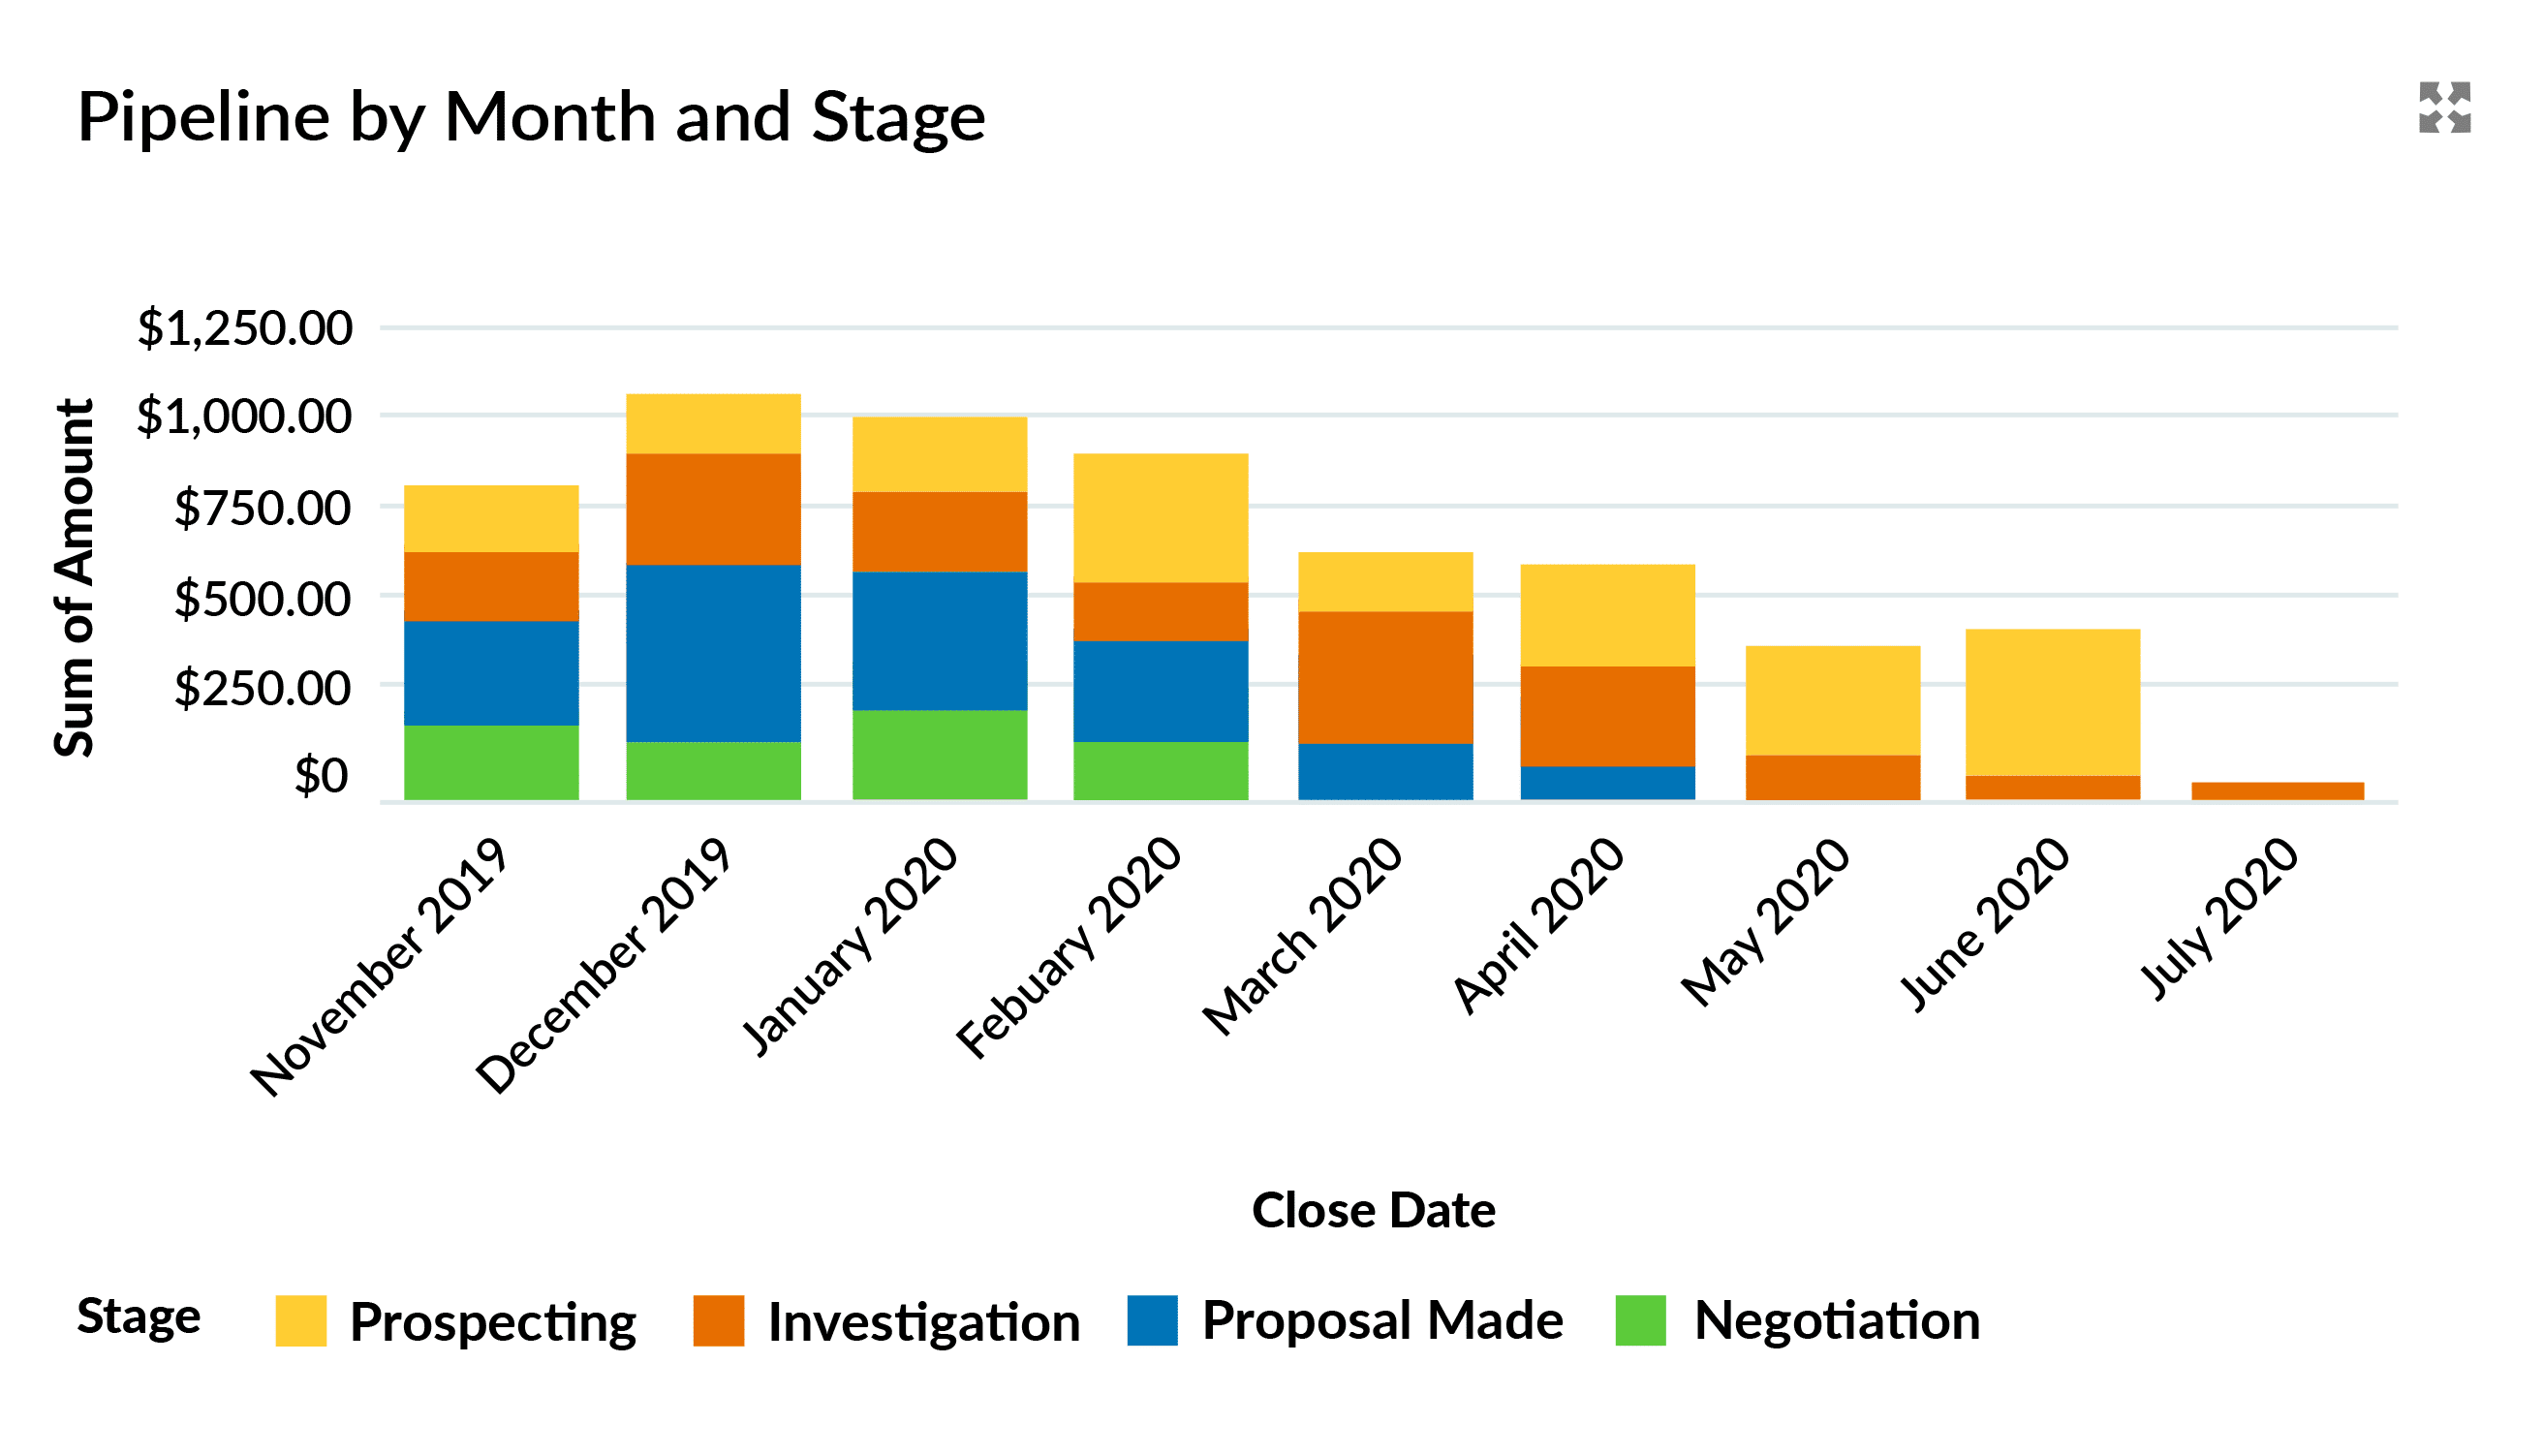 This dashboard chart shows how the stages combine with the Close Date and Amount to deliver pipeline visibility.